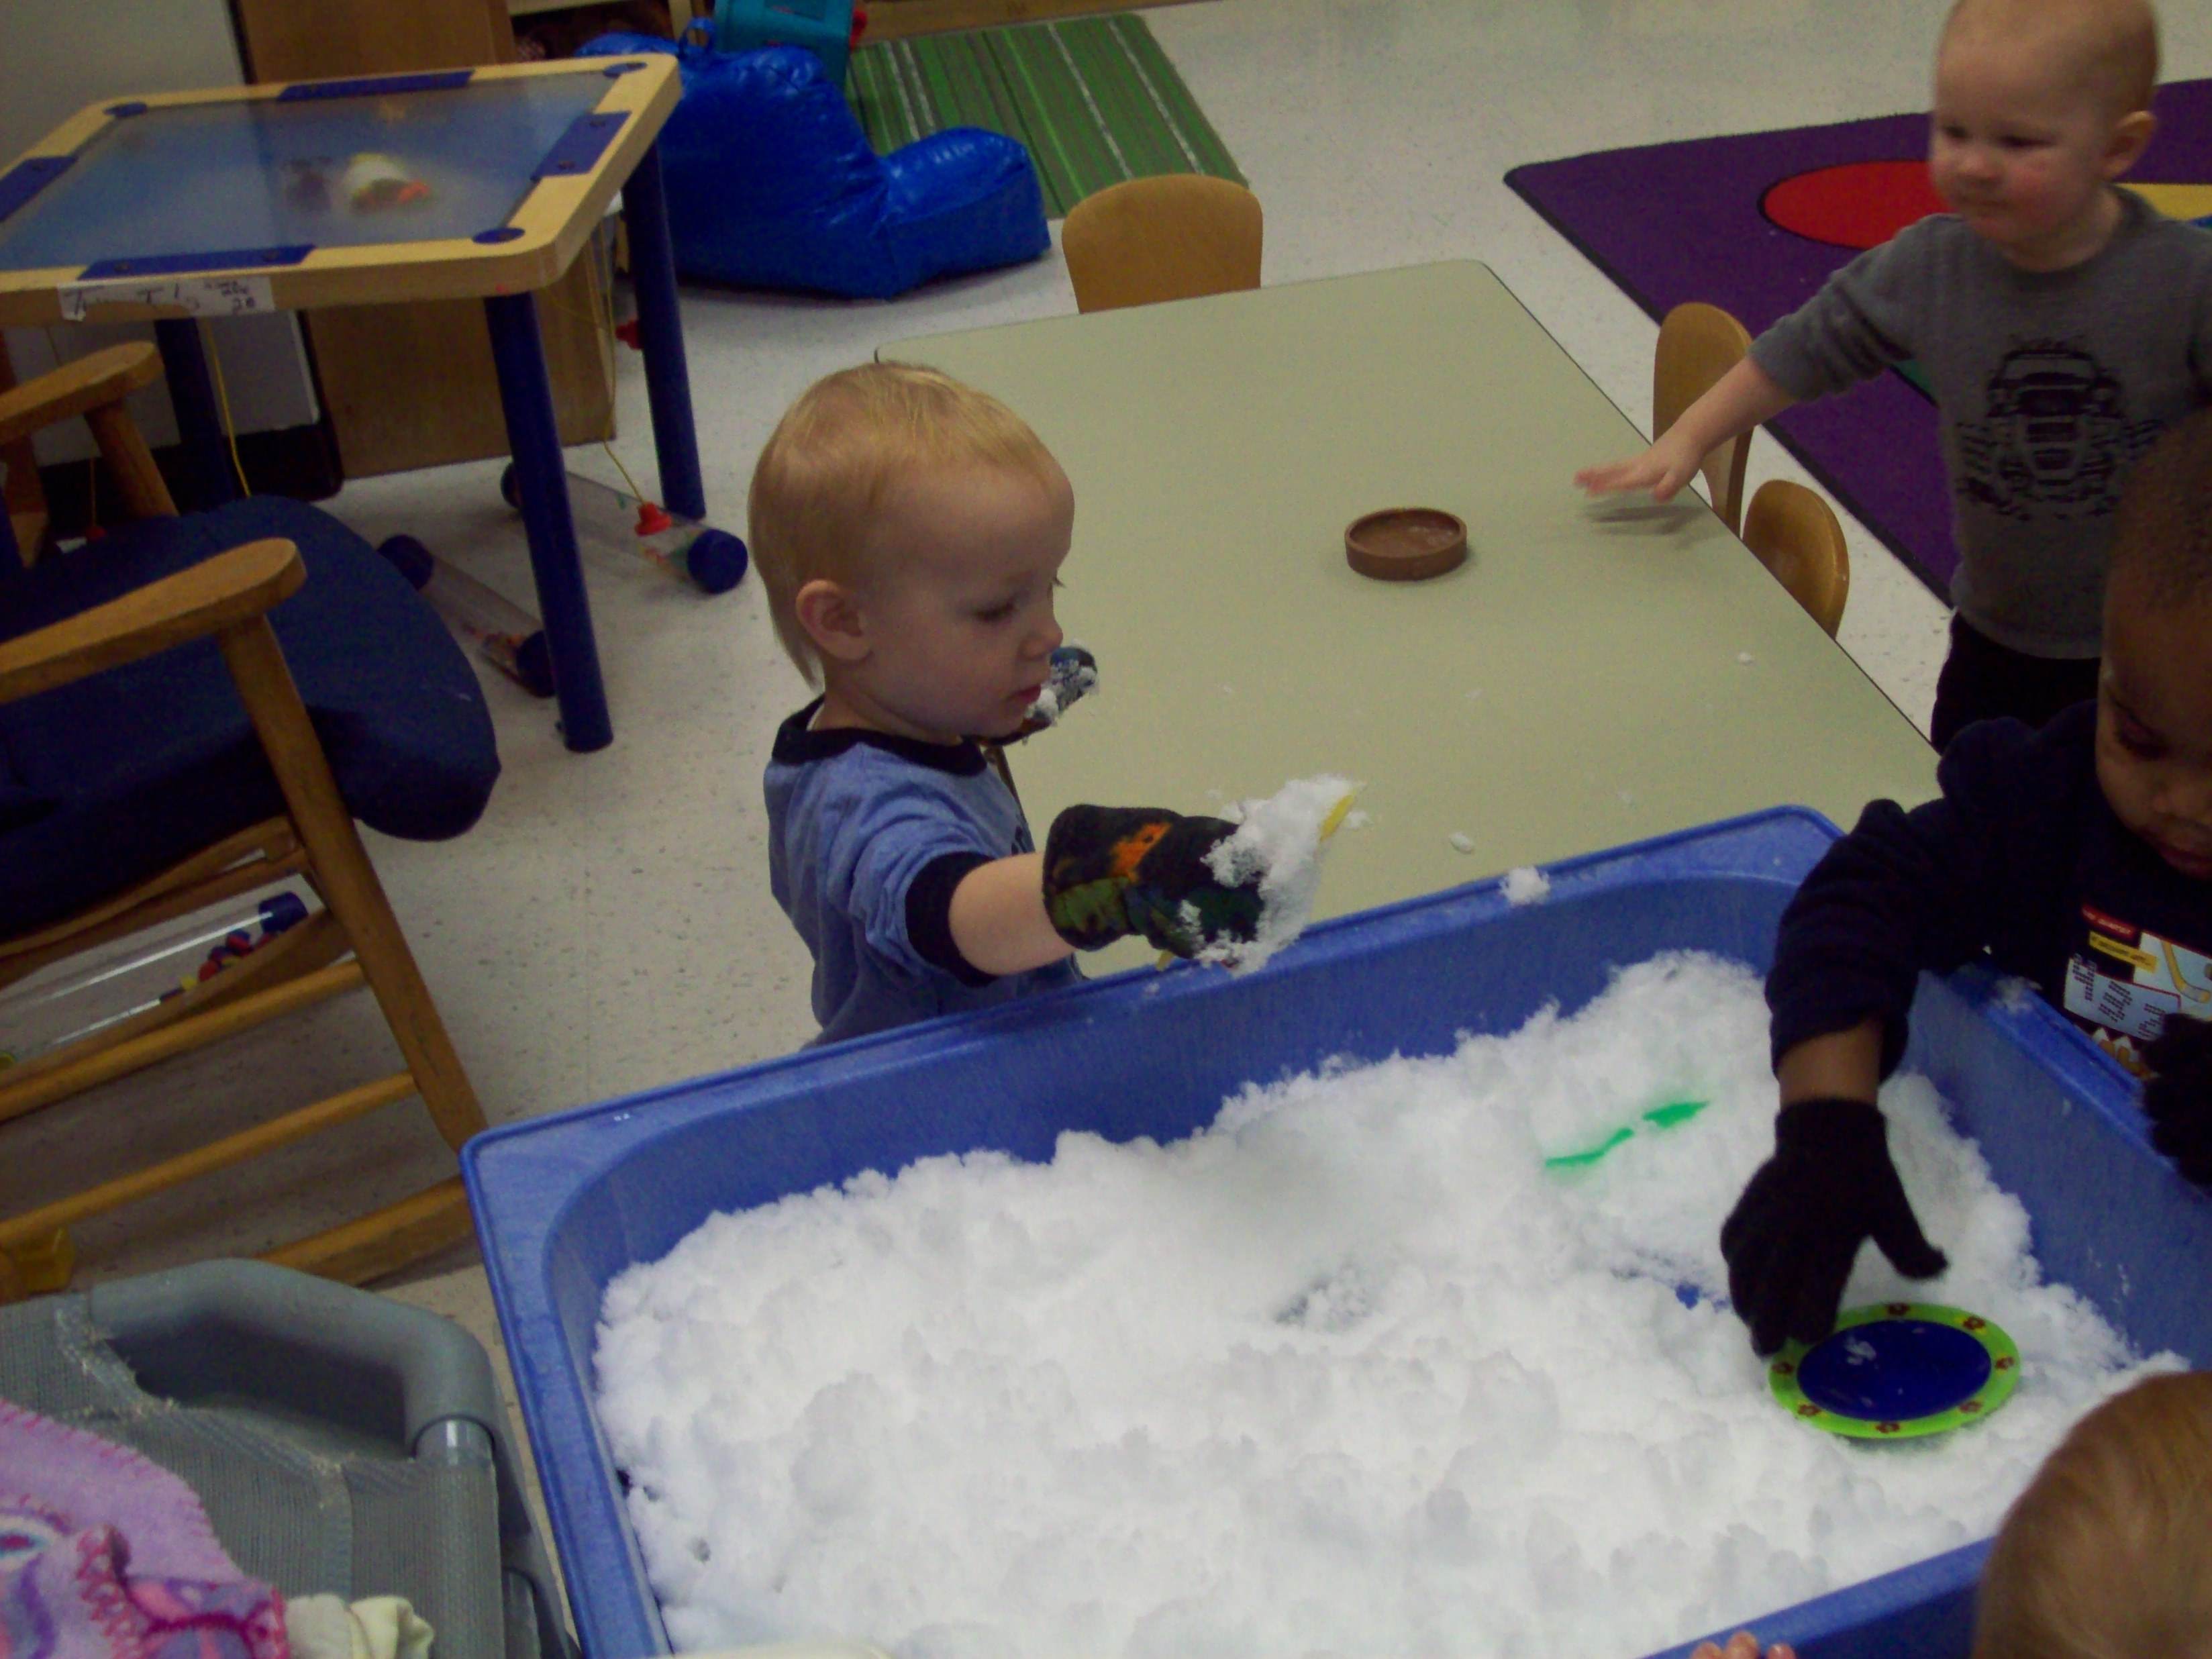 Day Nursery State Center Toddlers Like Indoor Snowplay Too